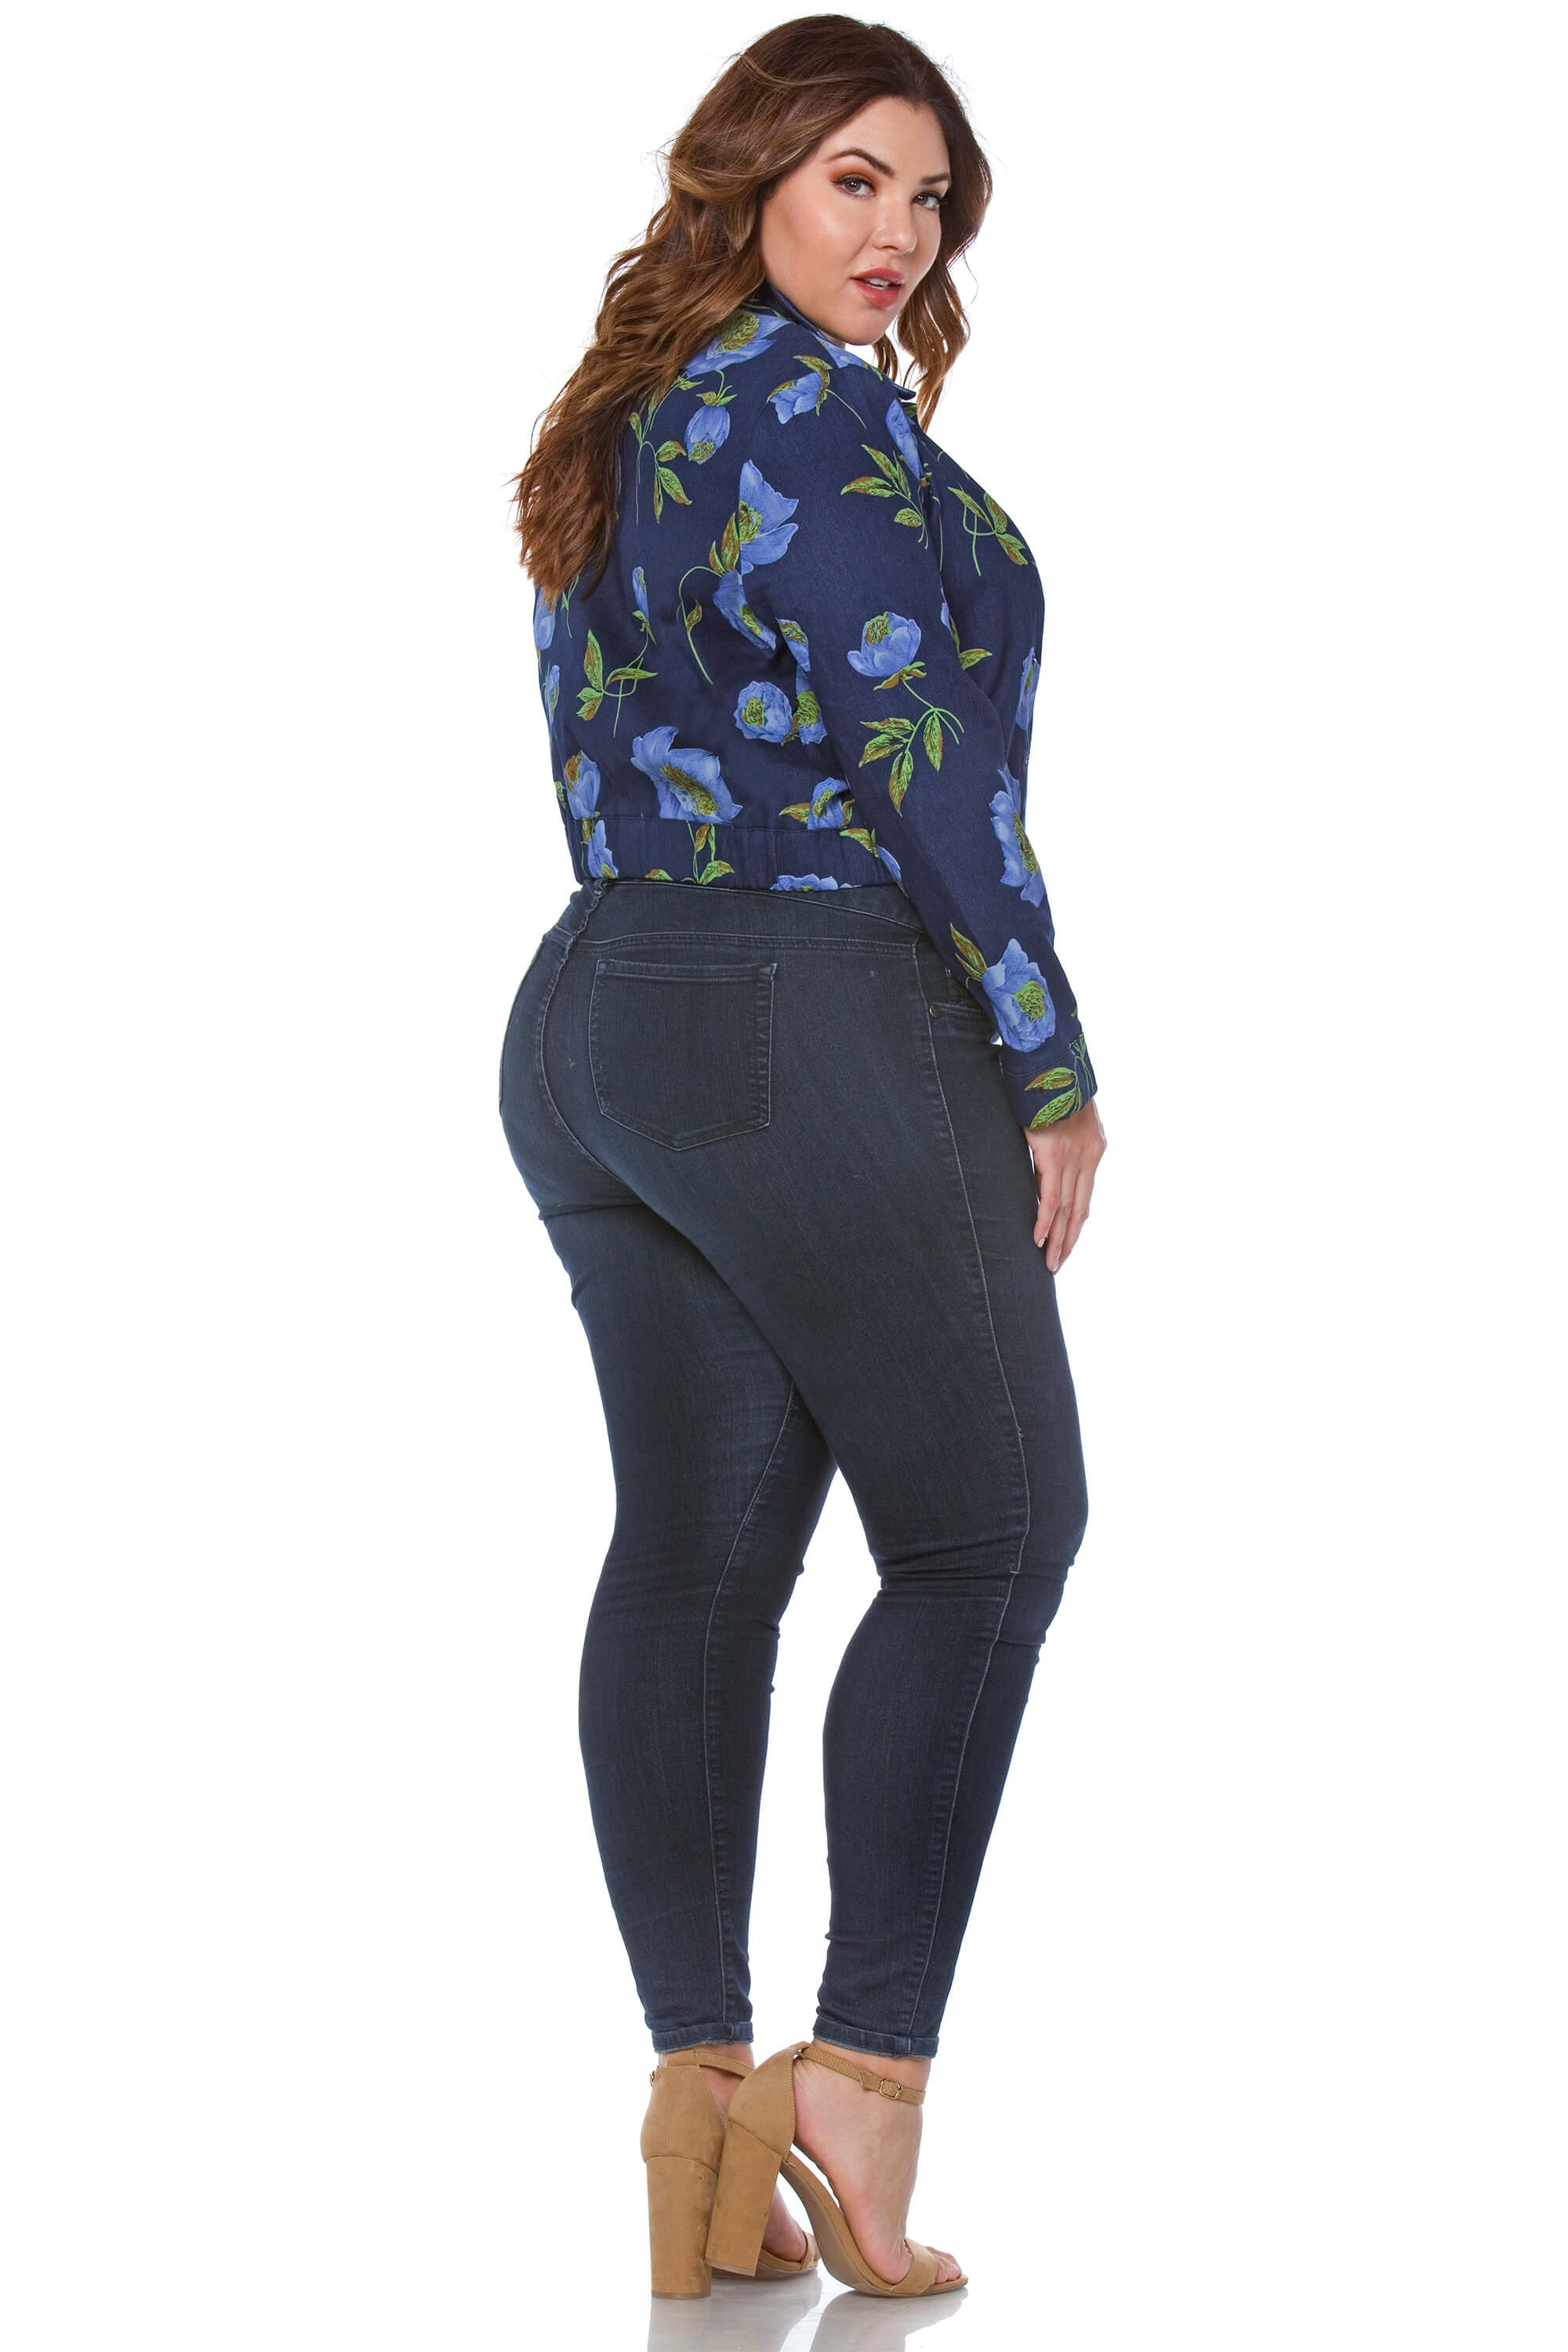 Cordis Plus Size Floral Denim Jacket for Women